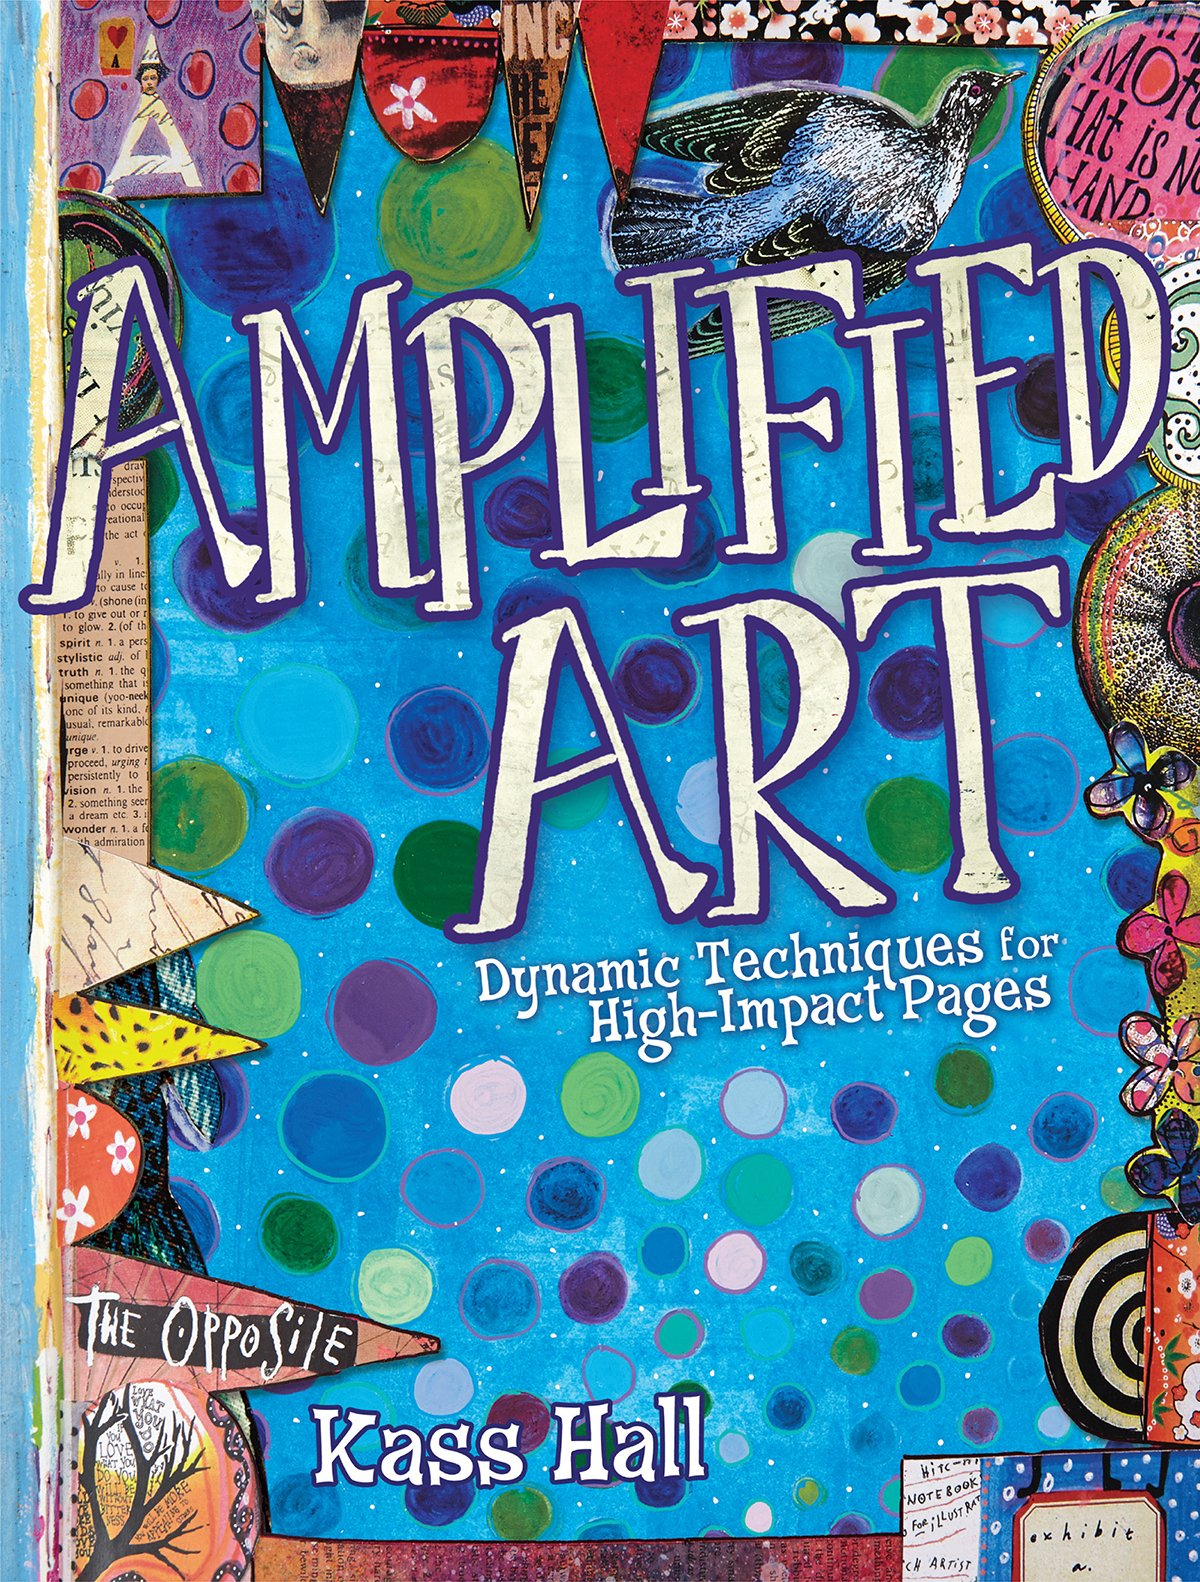 Amplified Art: Dynamic Techniques for High-Impact Pages